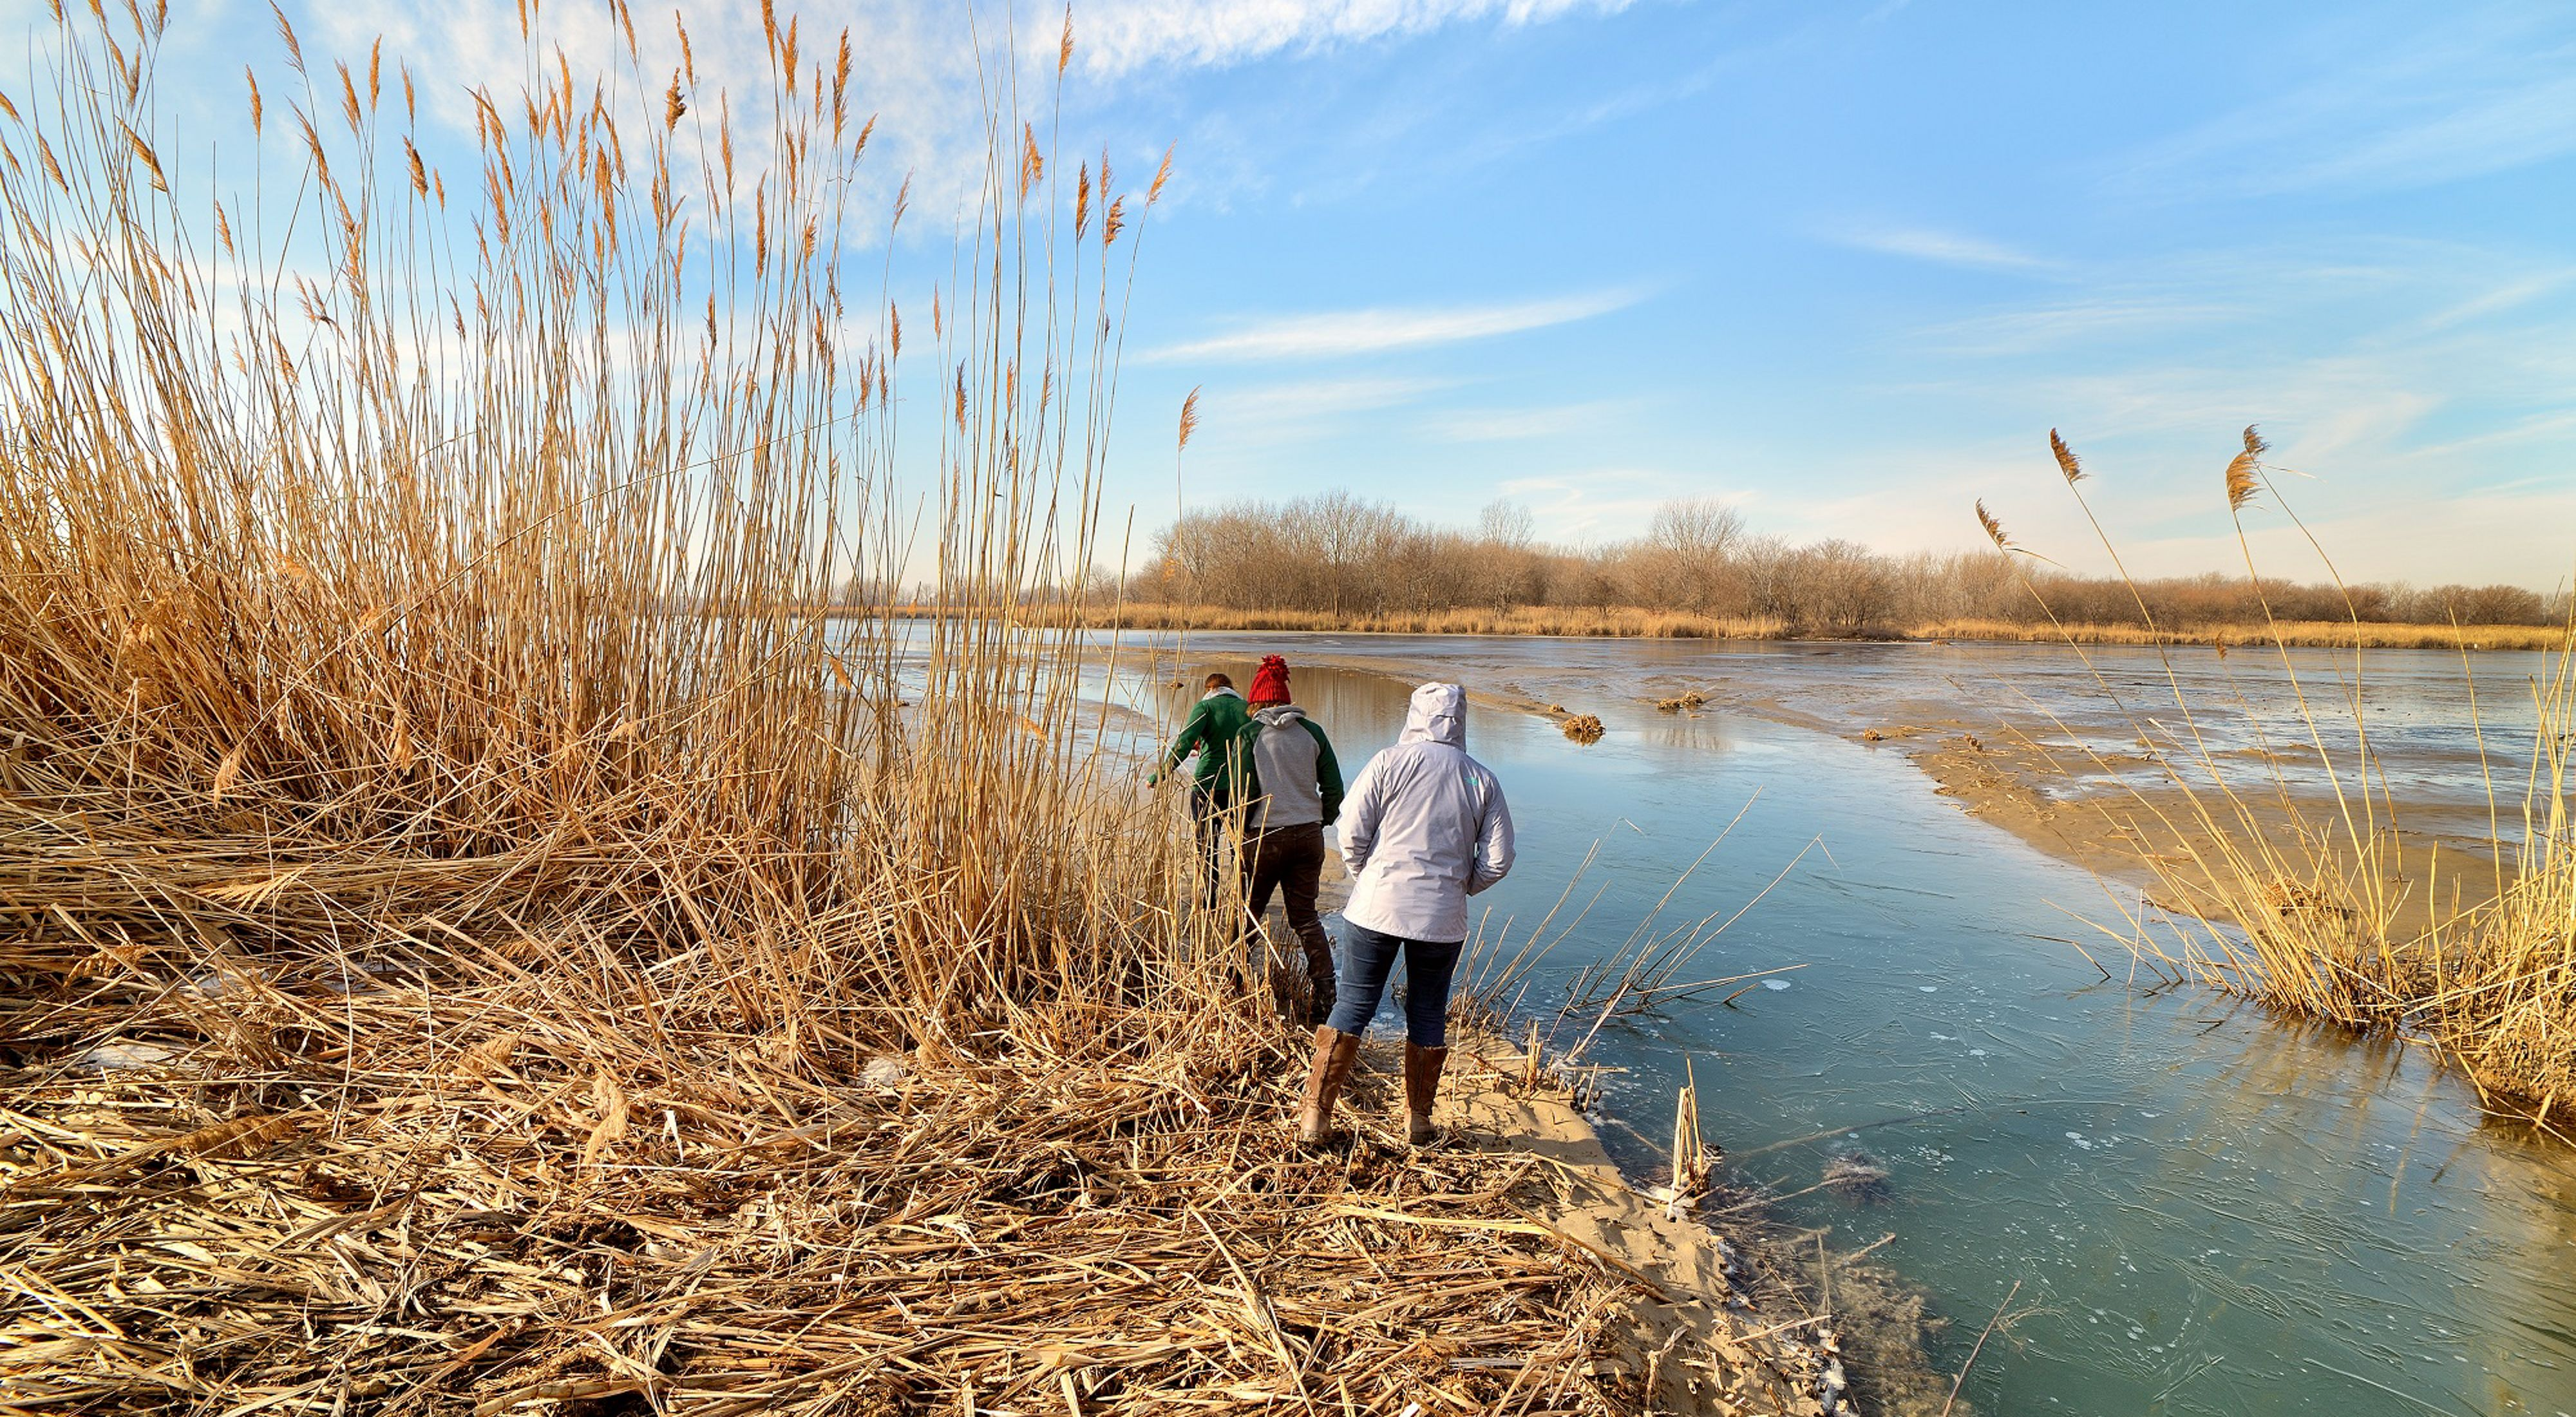 Three people viewed from behind, walking along the water line in a marsh in winter, with tall brown marsh grasses growing up to the shore.